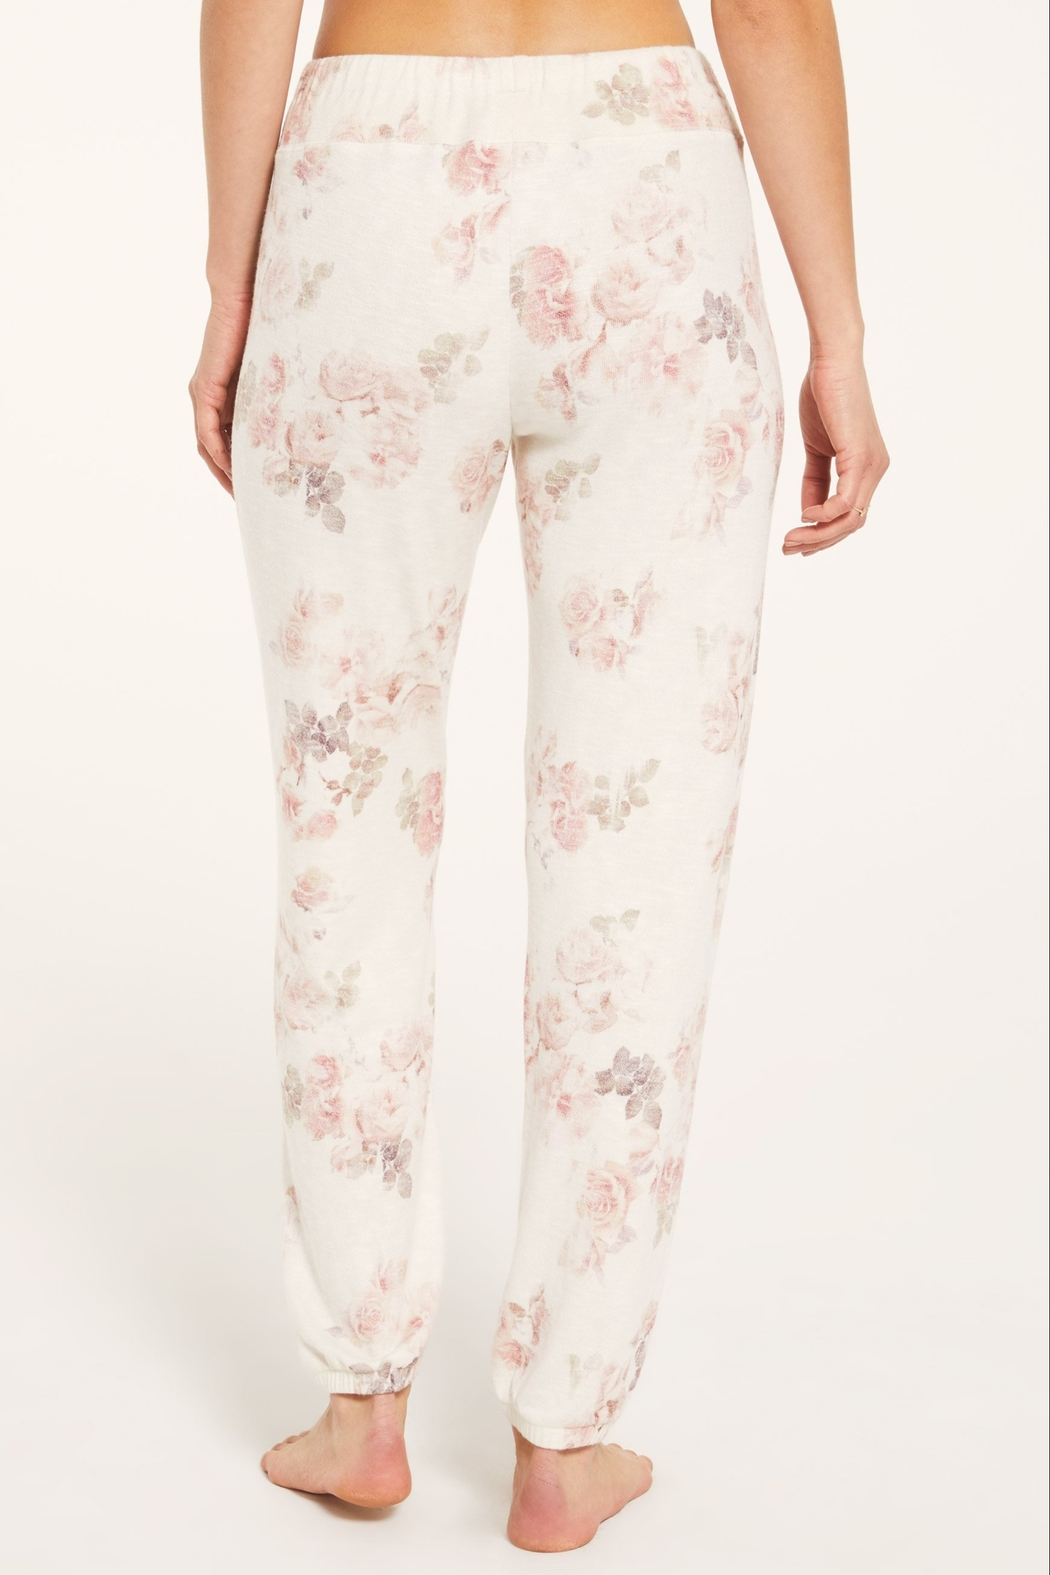 z supply Ava Floral Jogger - Side Cropped Image